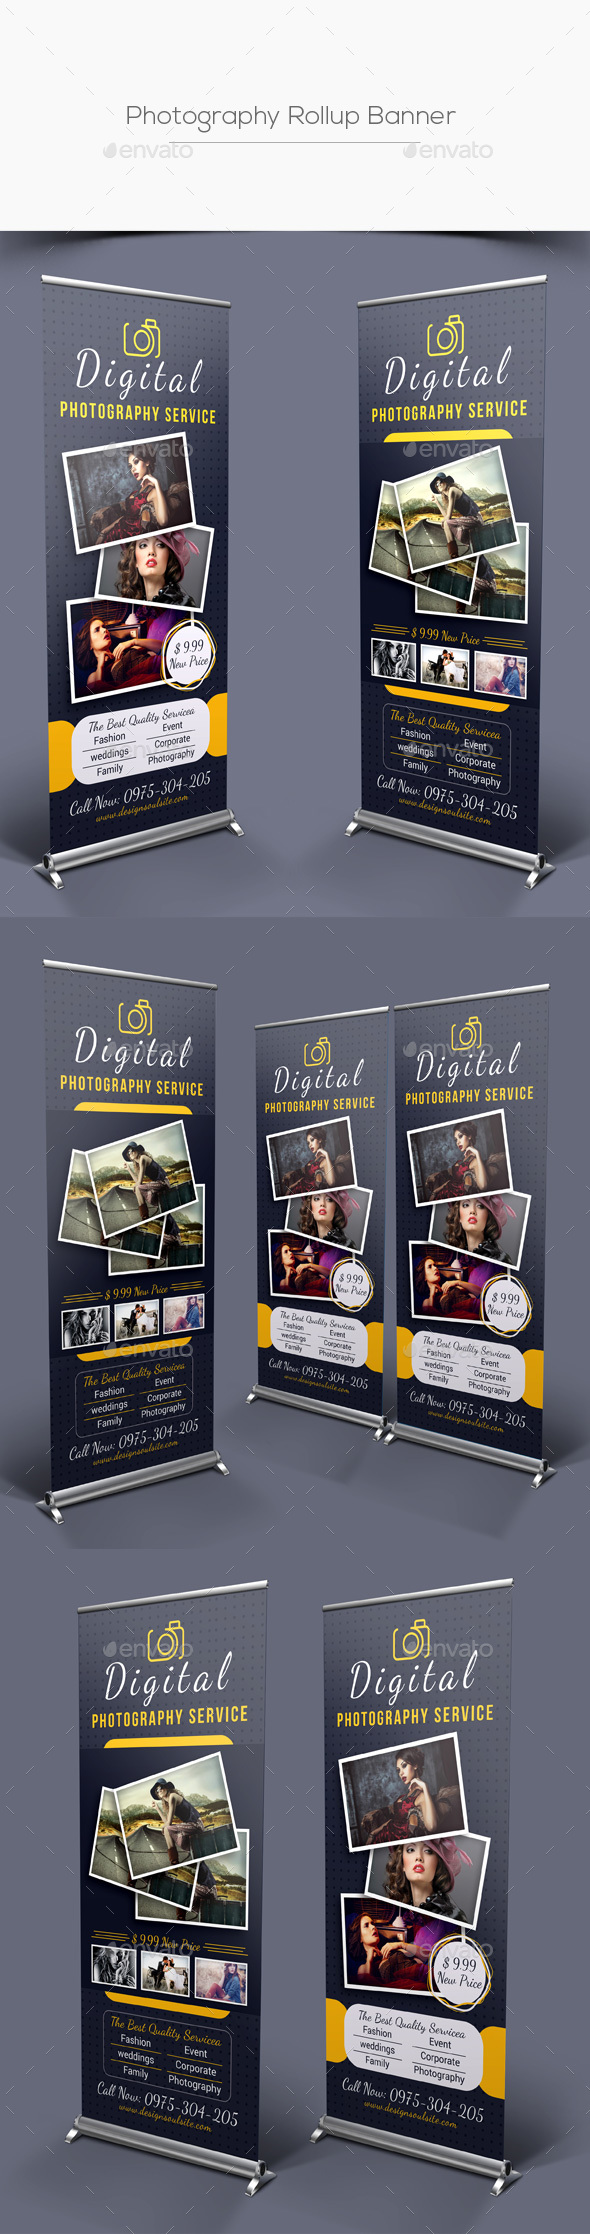 GraphicRiver Photography Rollup Banner 21036673